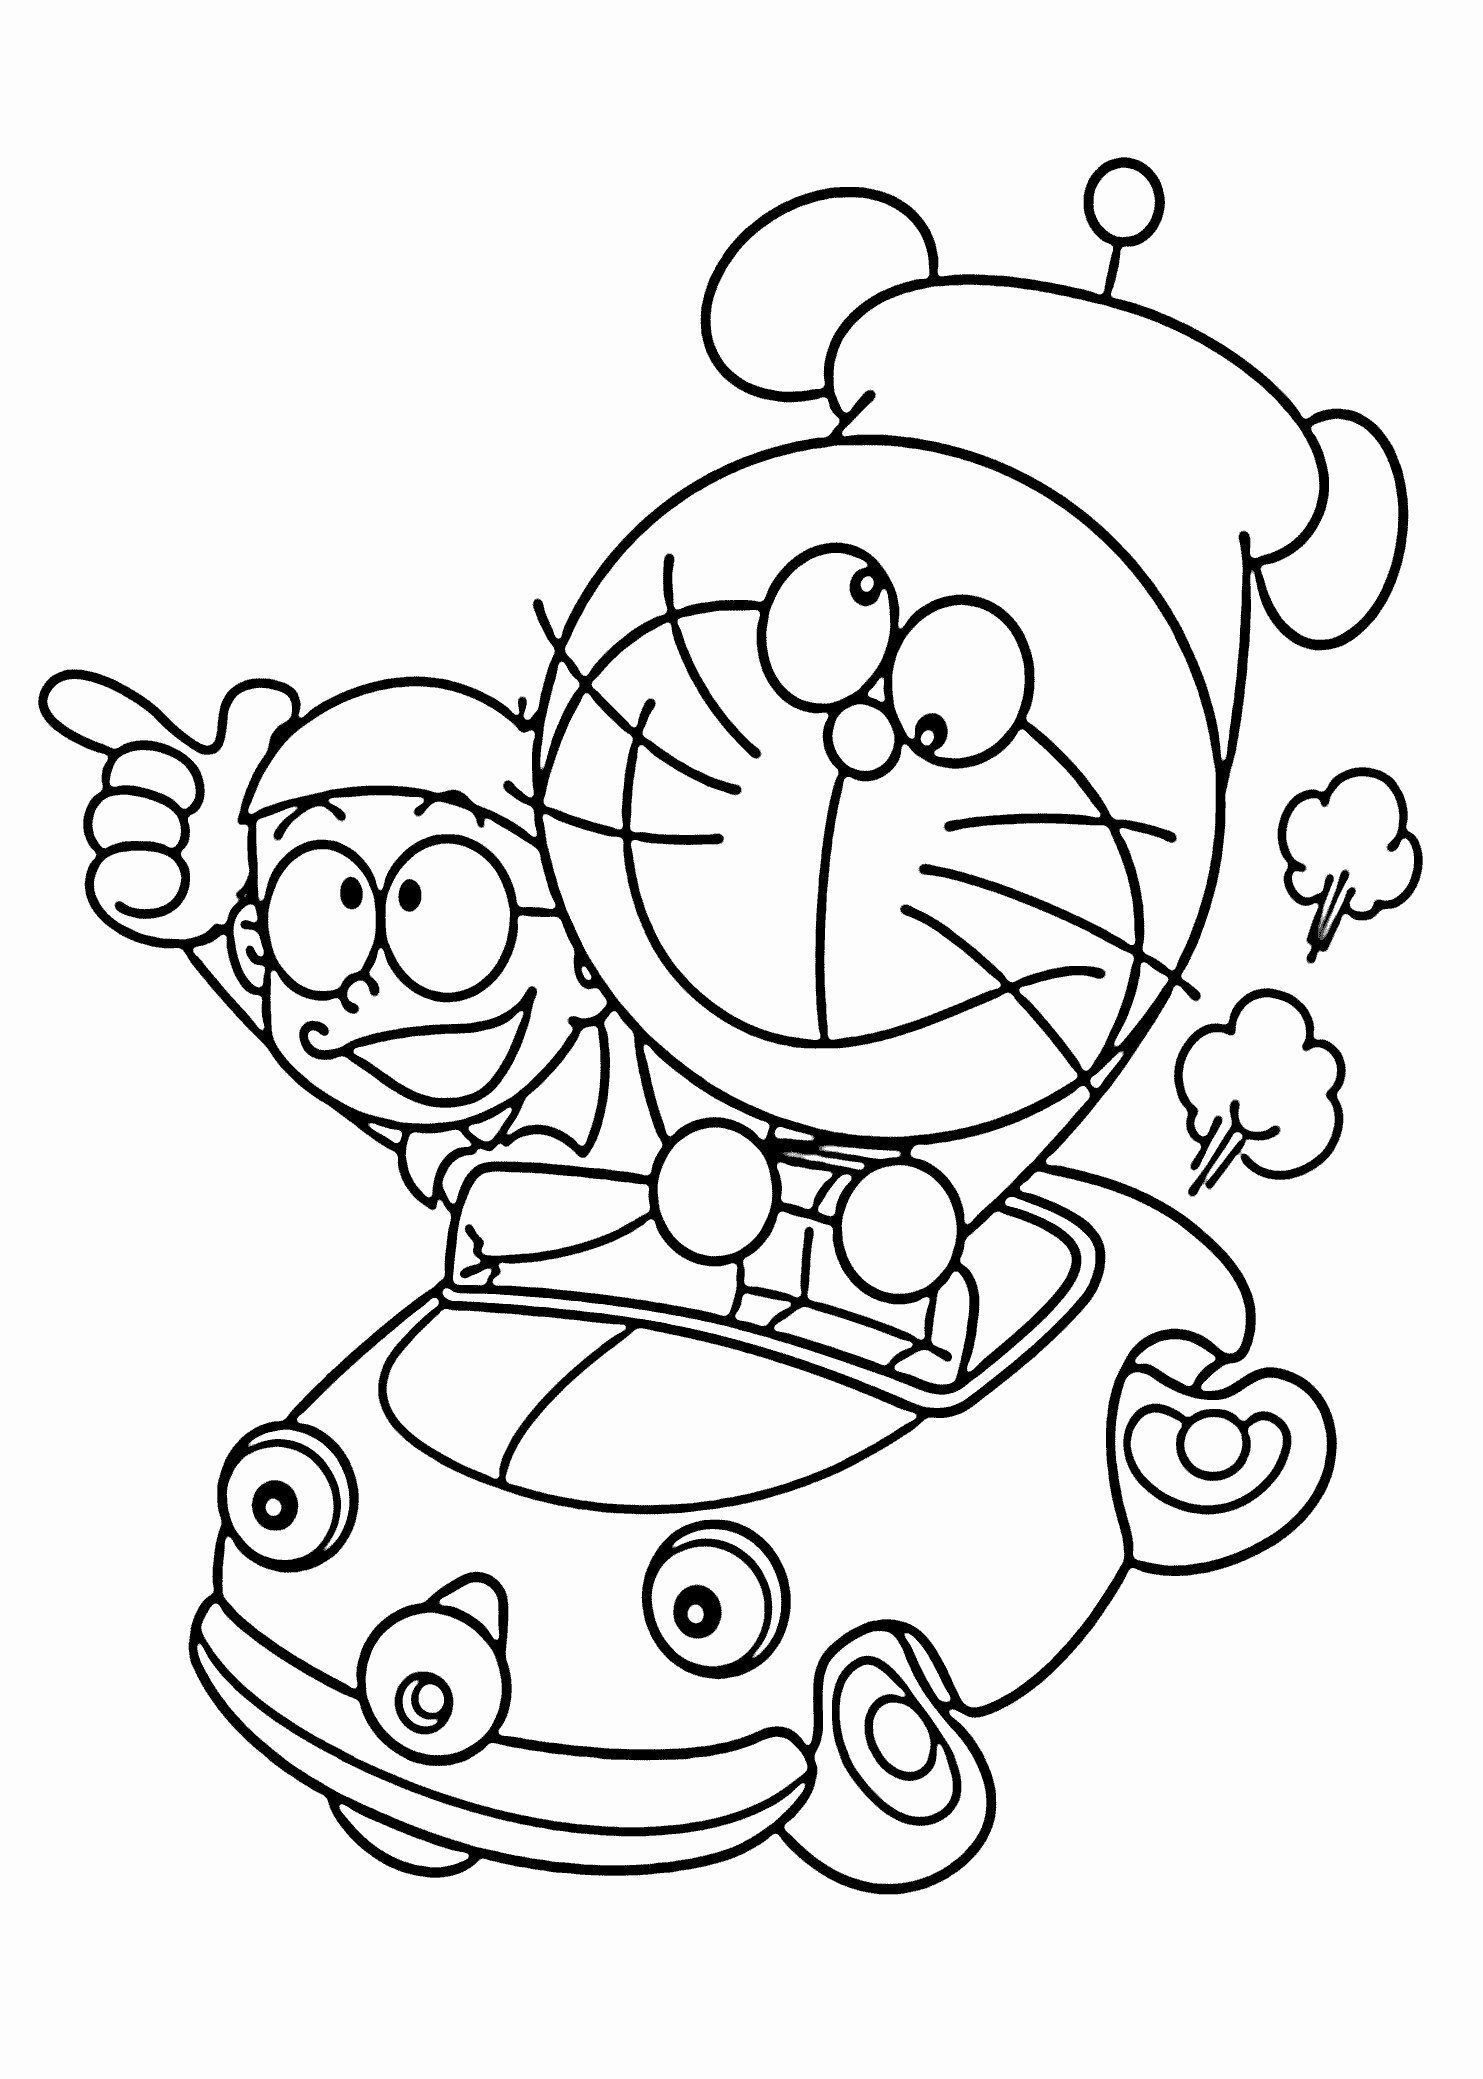 Pin on Example Color Coloring Pages